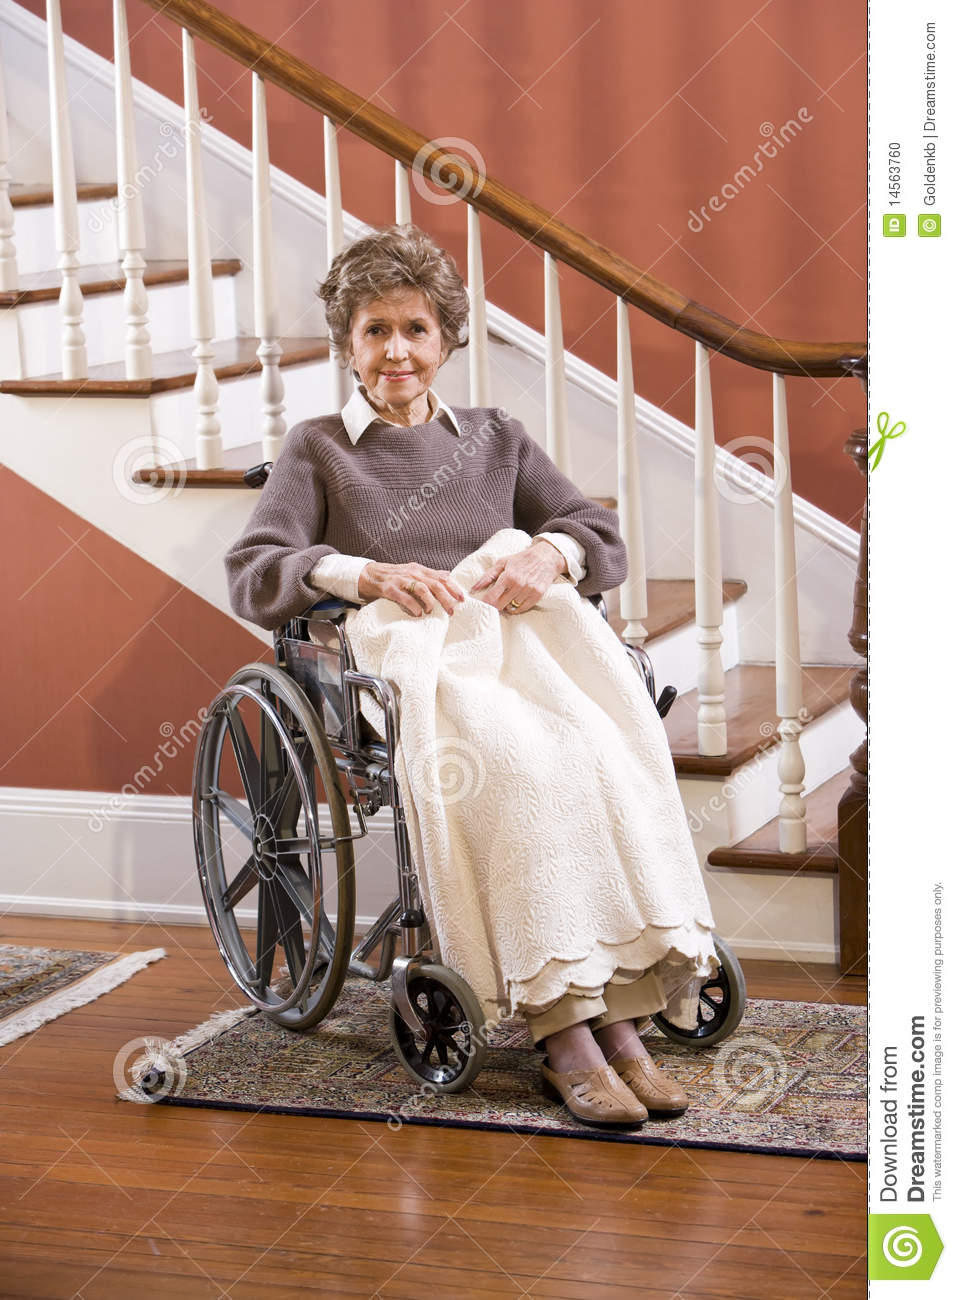 Senior Woman At Home Sitting In Wheelchair Stock Photo  Image 14563760